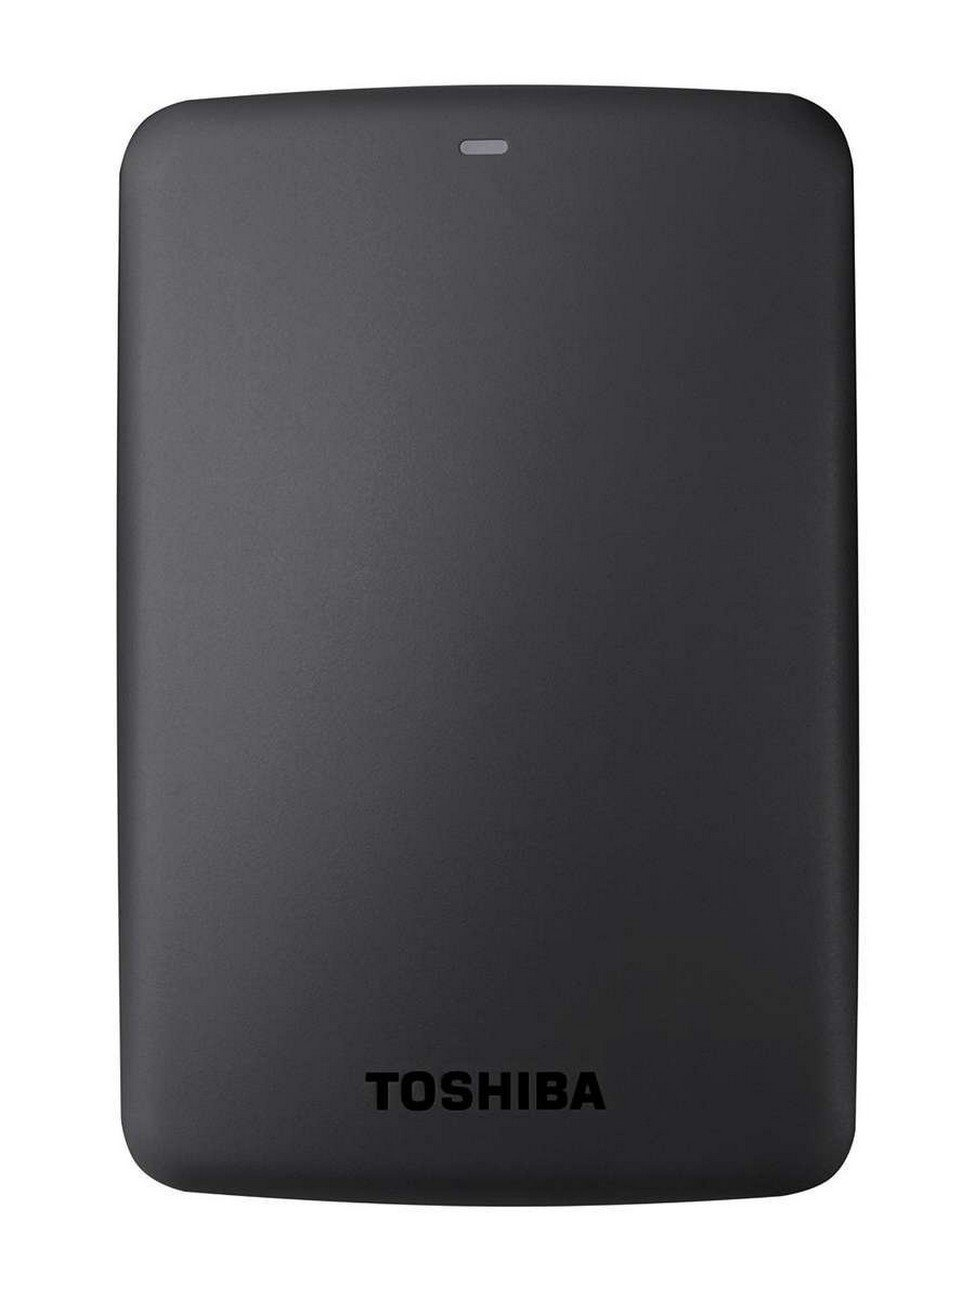 Toshiba Canvio Basic 3TB External Hard Drive (Black)